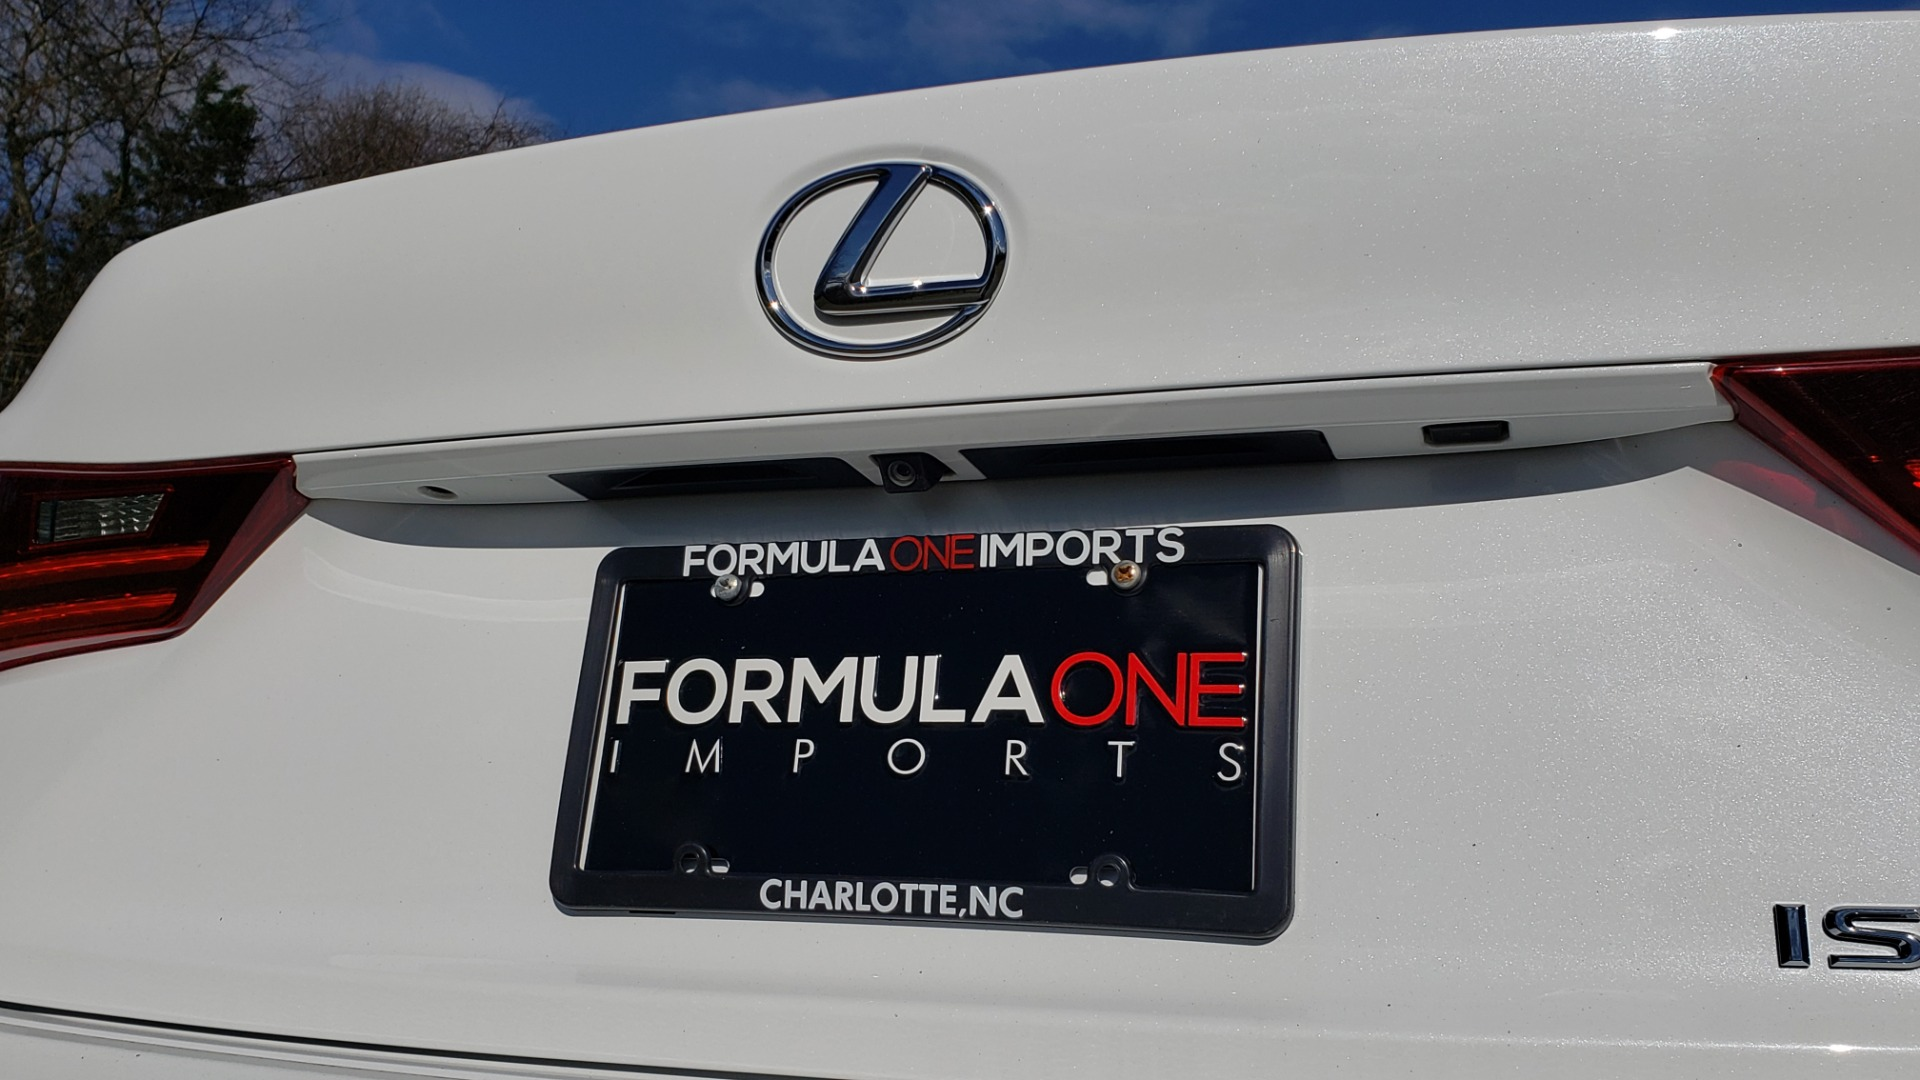 Used 2014 Lexus IS 250 F-SPORT / NAV / SUNROOF / REARVIEW / BSM for sale Sold at Formula Imports in Charlotte NC 28227 19